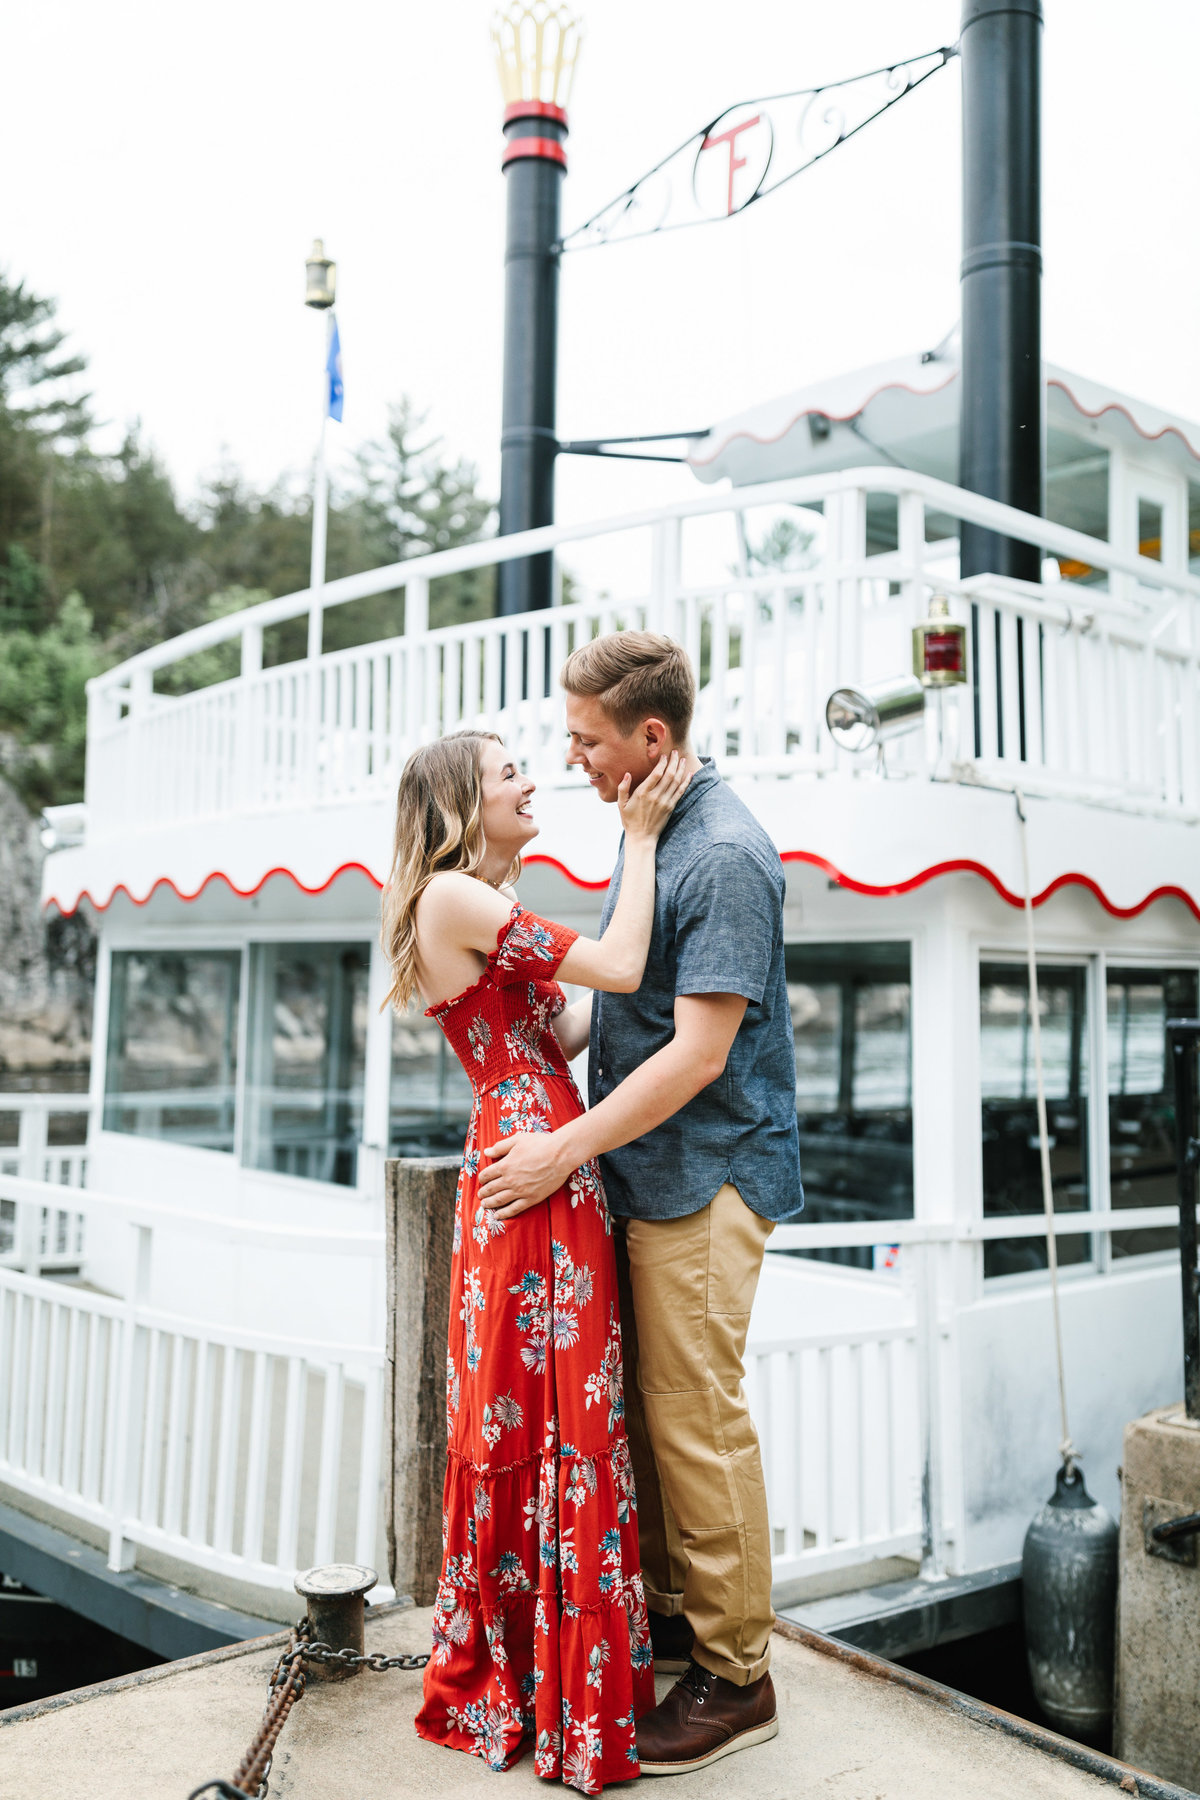 Taylors-Falls-Minneapolis-Spring-Engagement-28